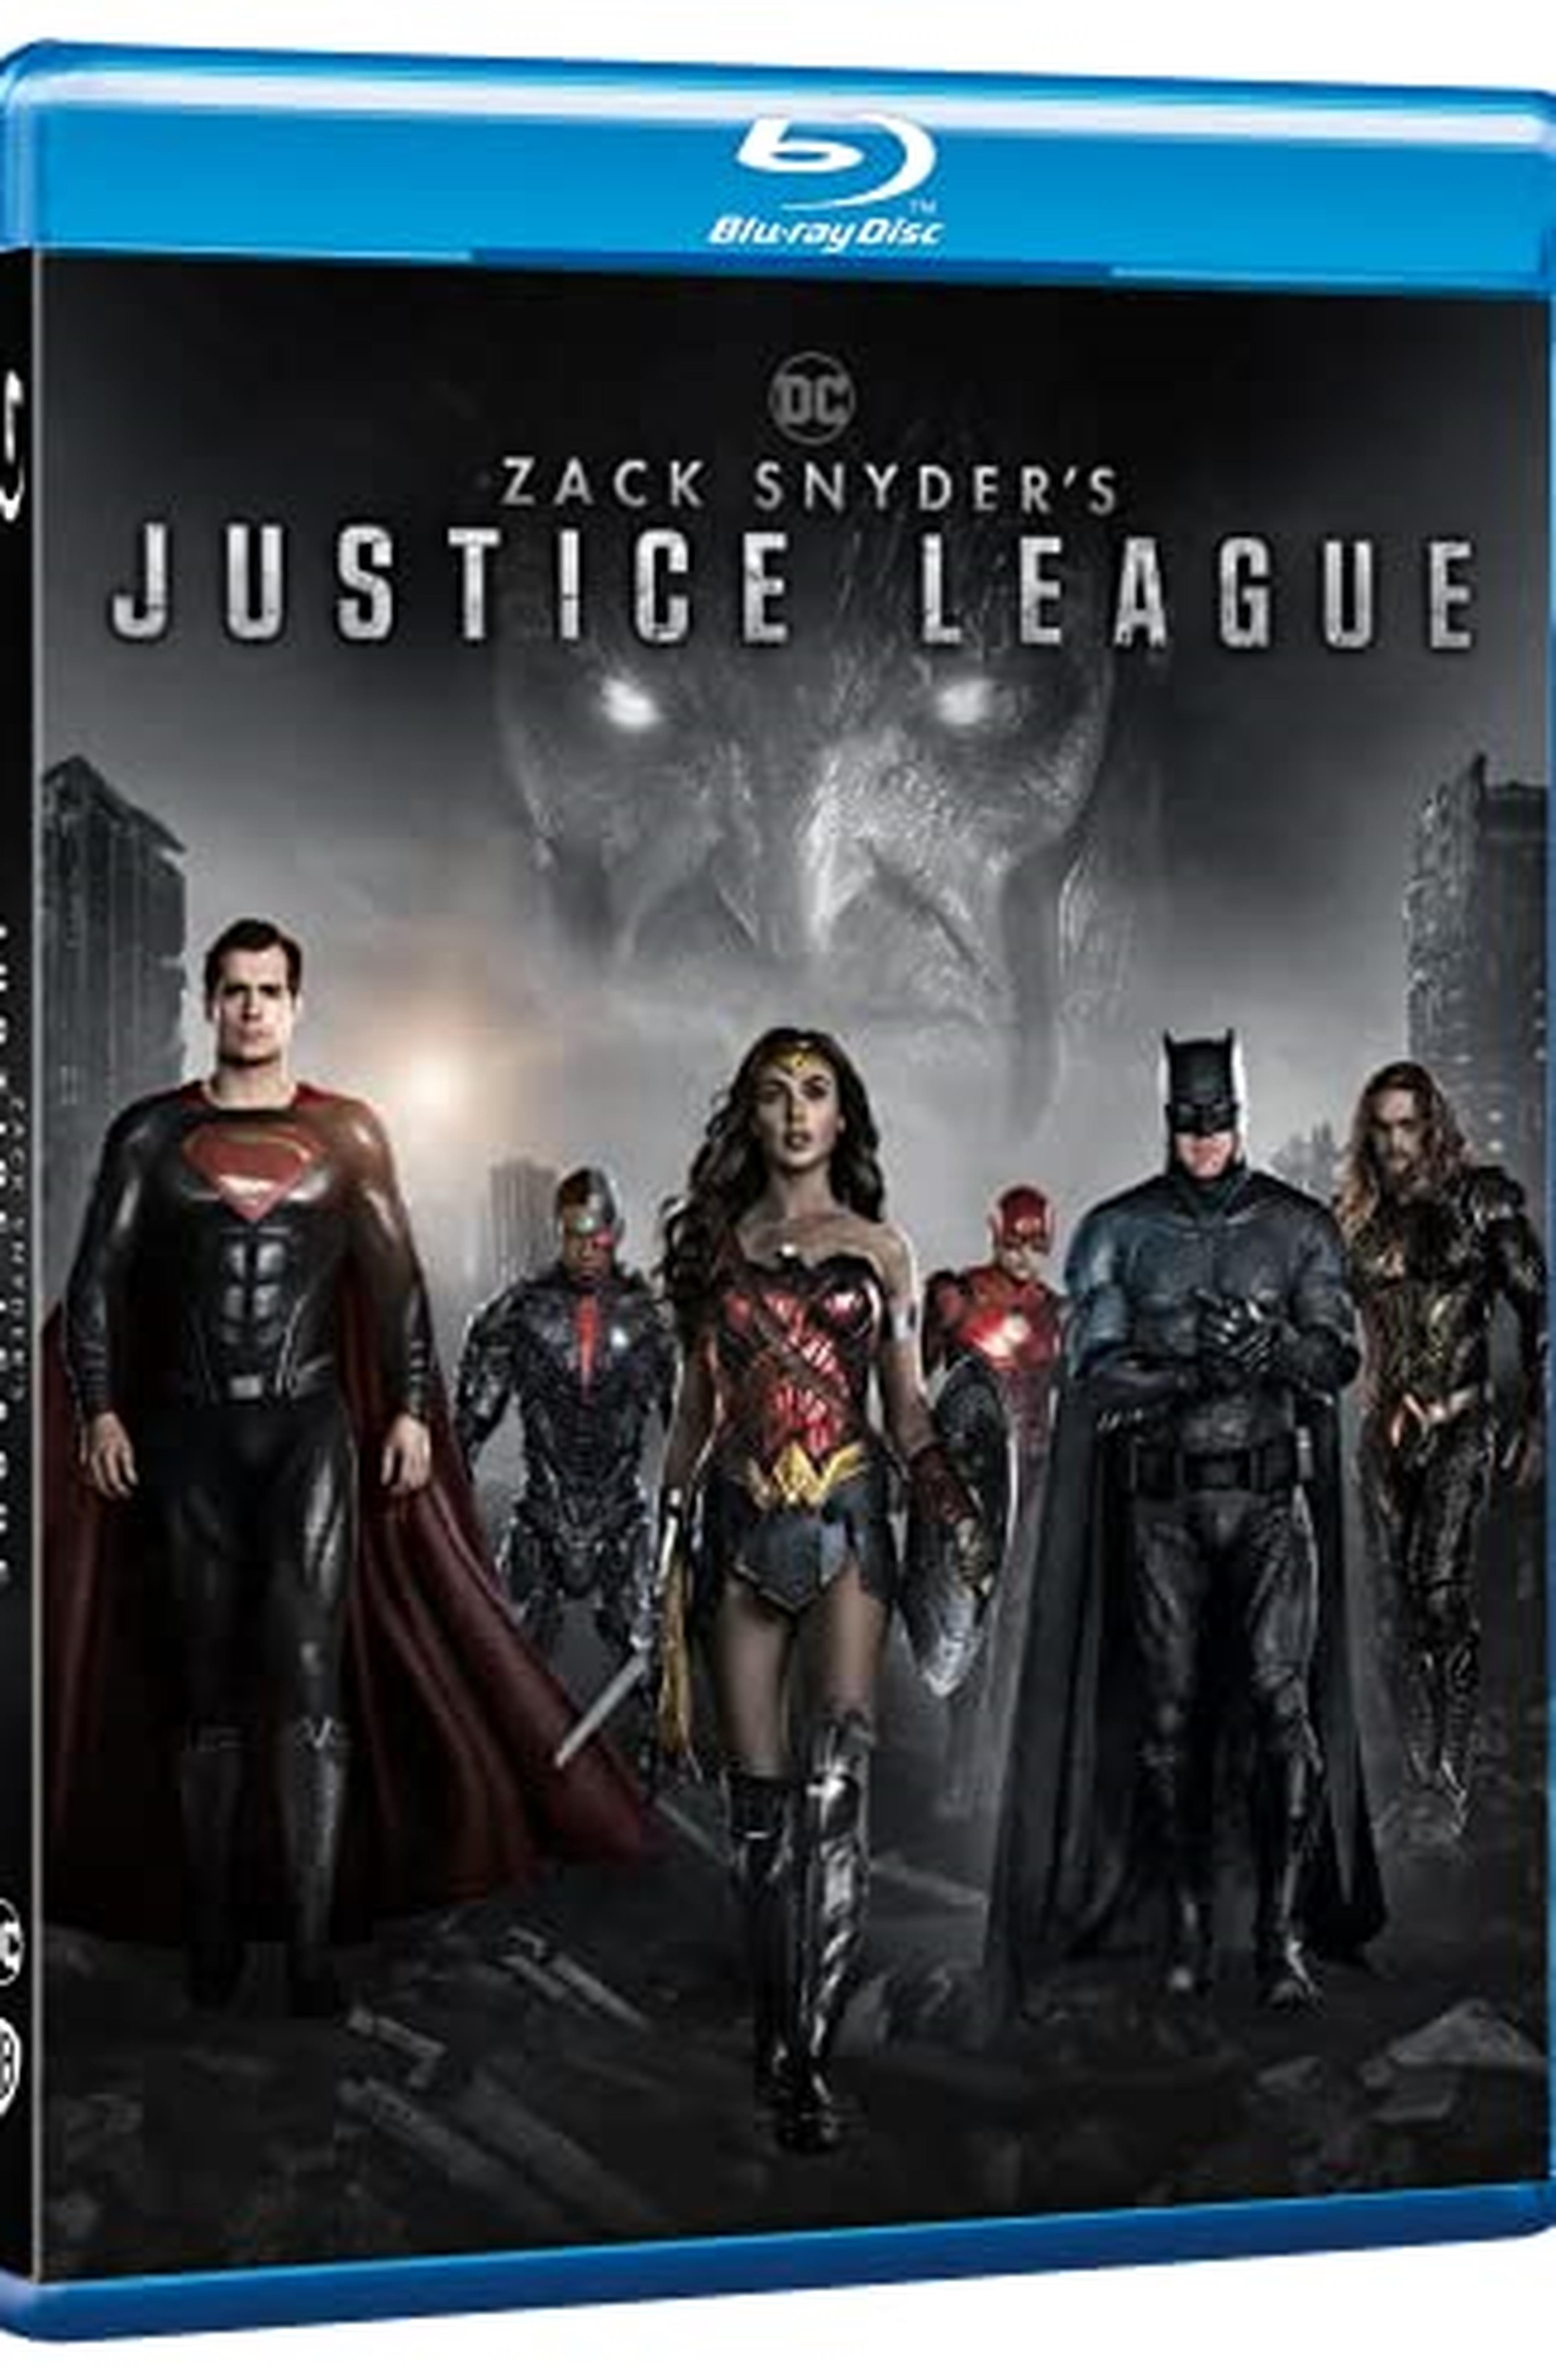 Zack Snyder's Justice League (2 Blu Ray's)